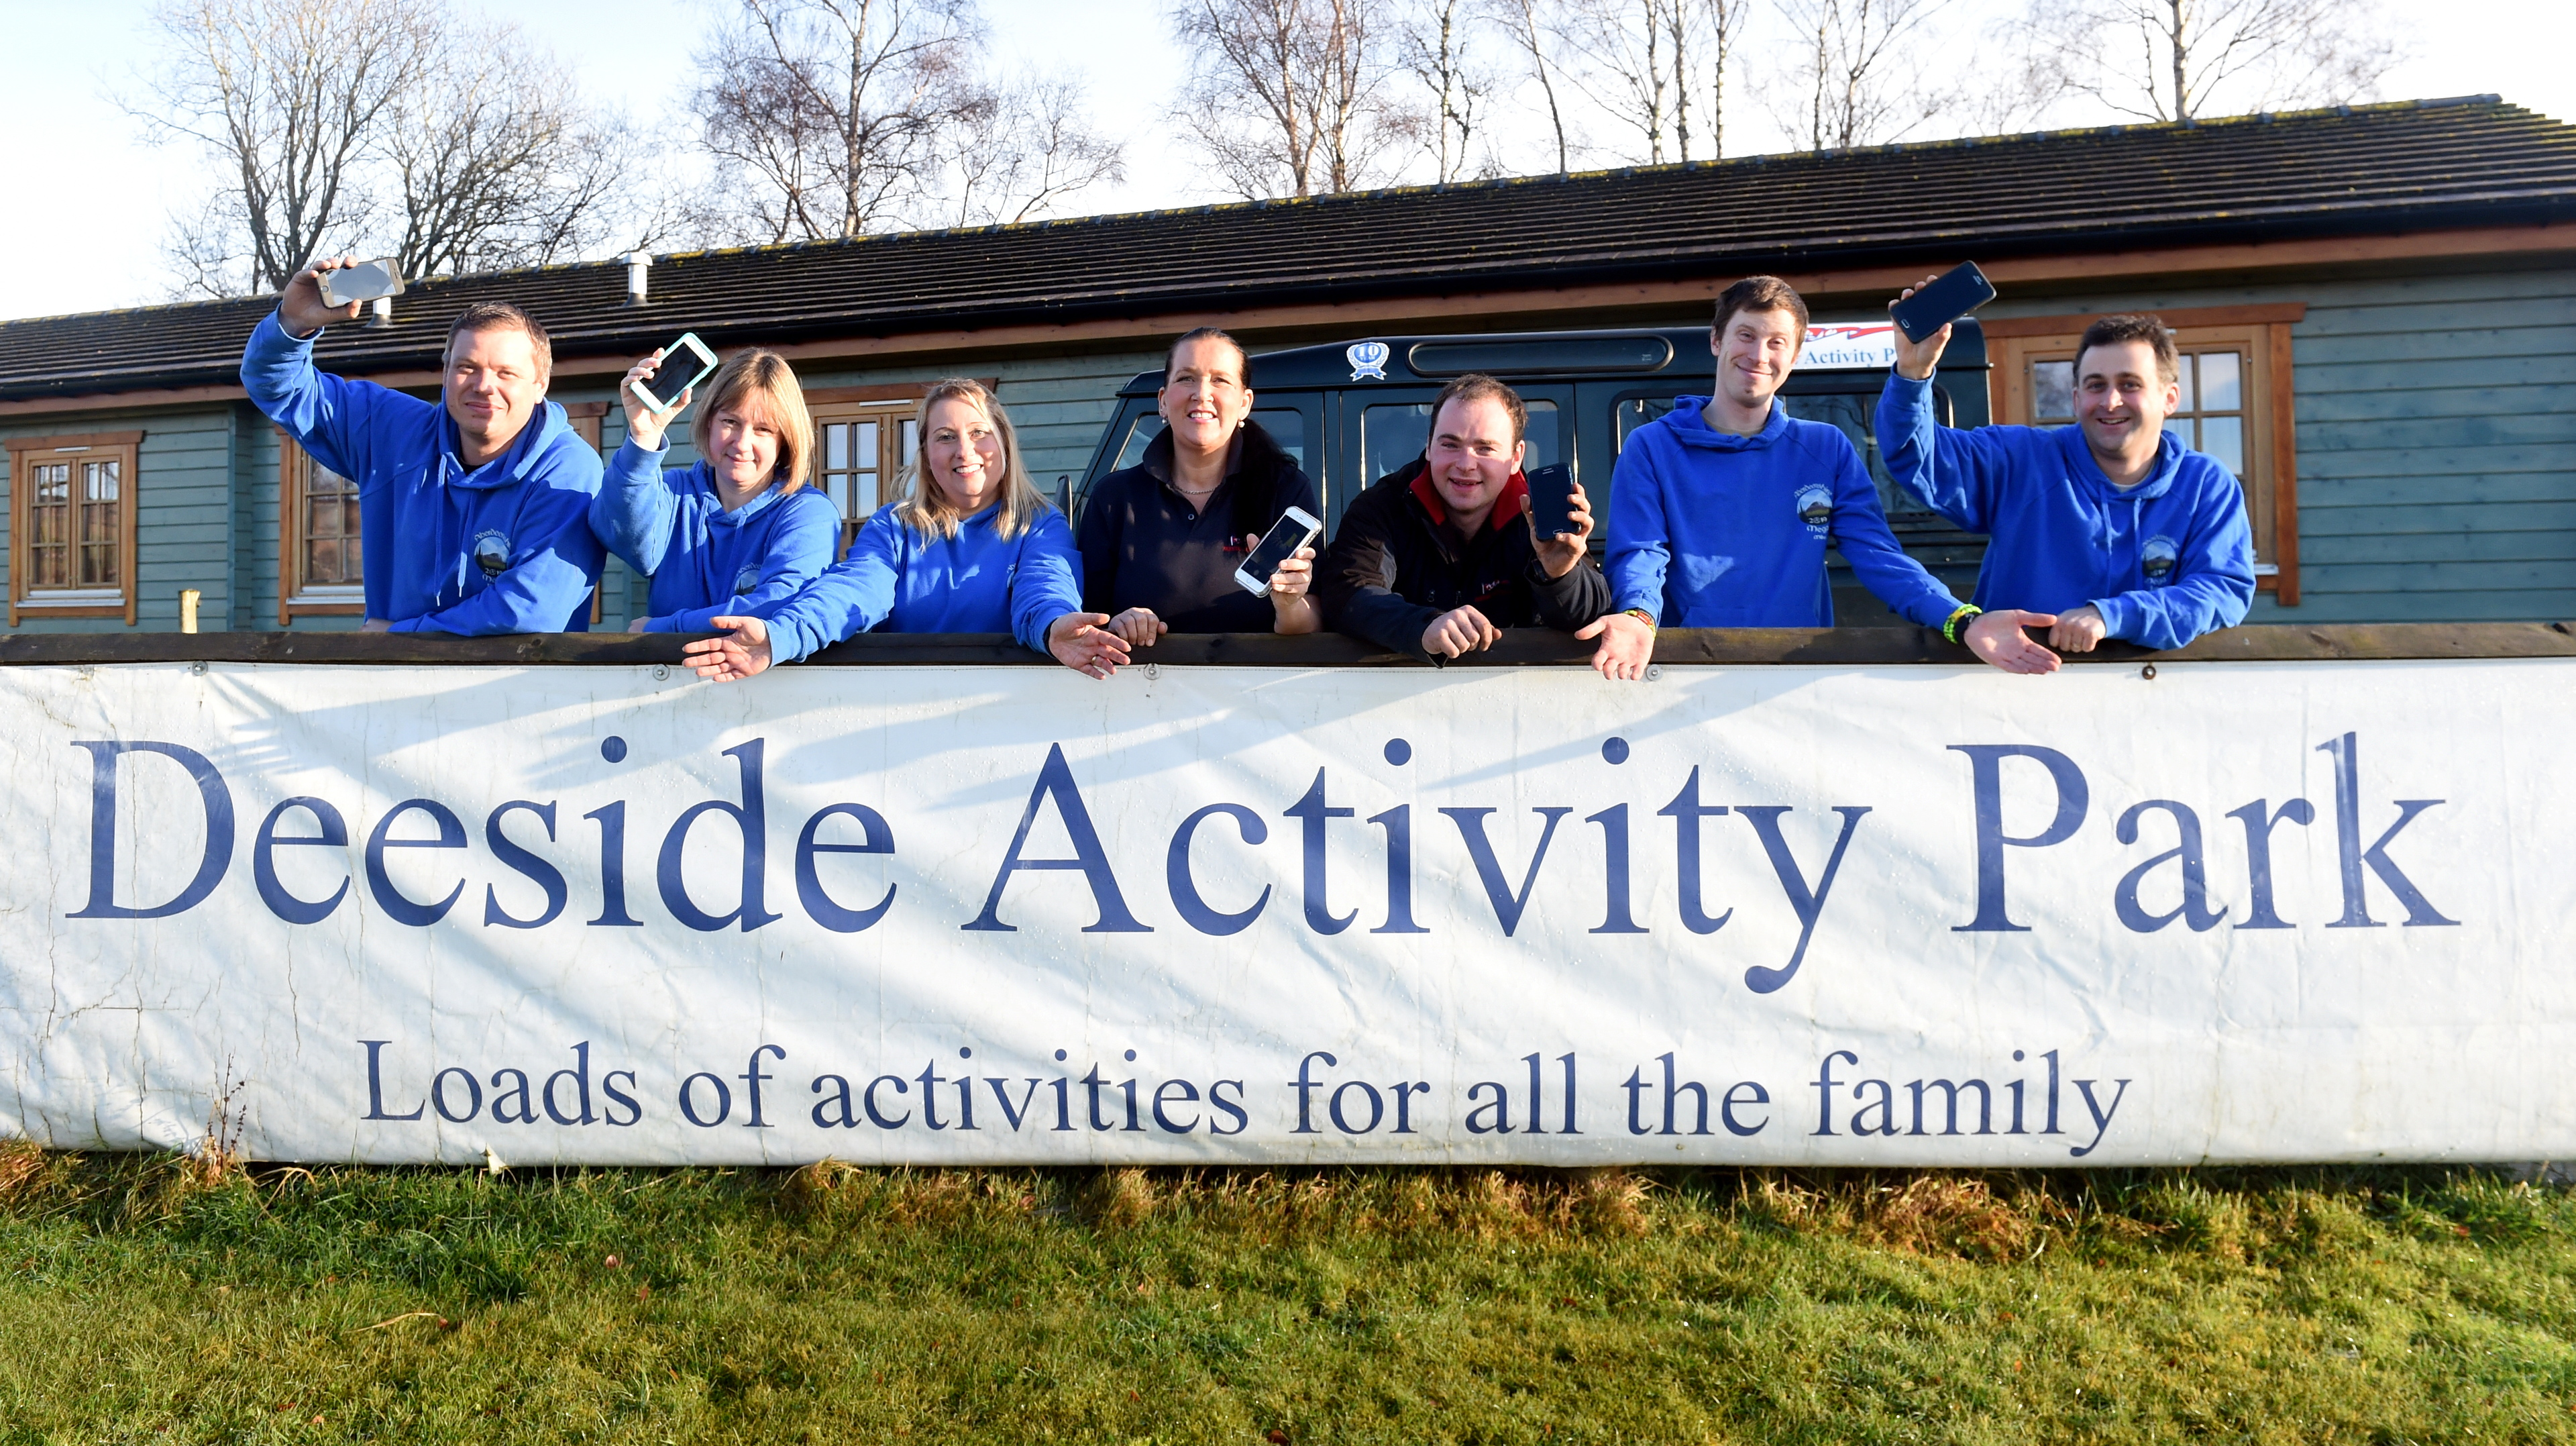 Deeside Activity Park will host the event.